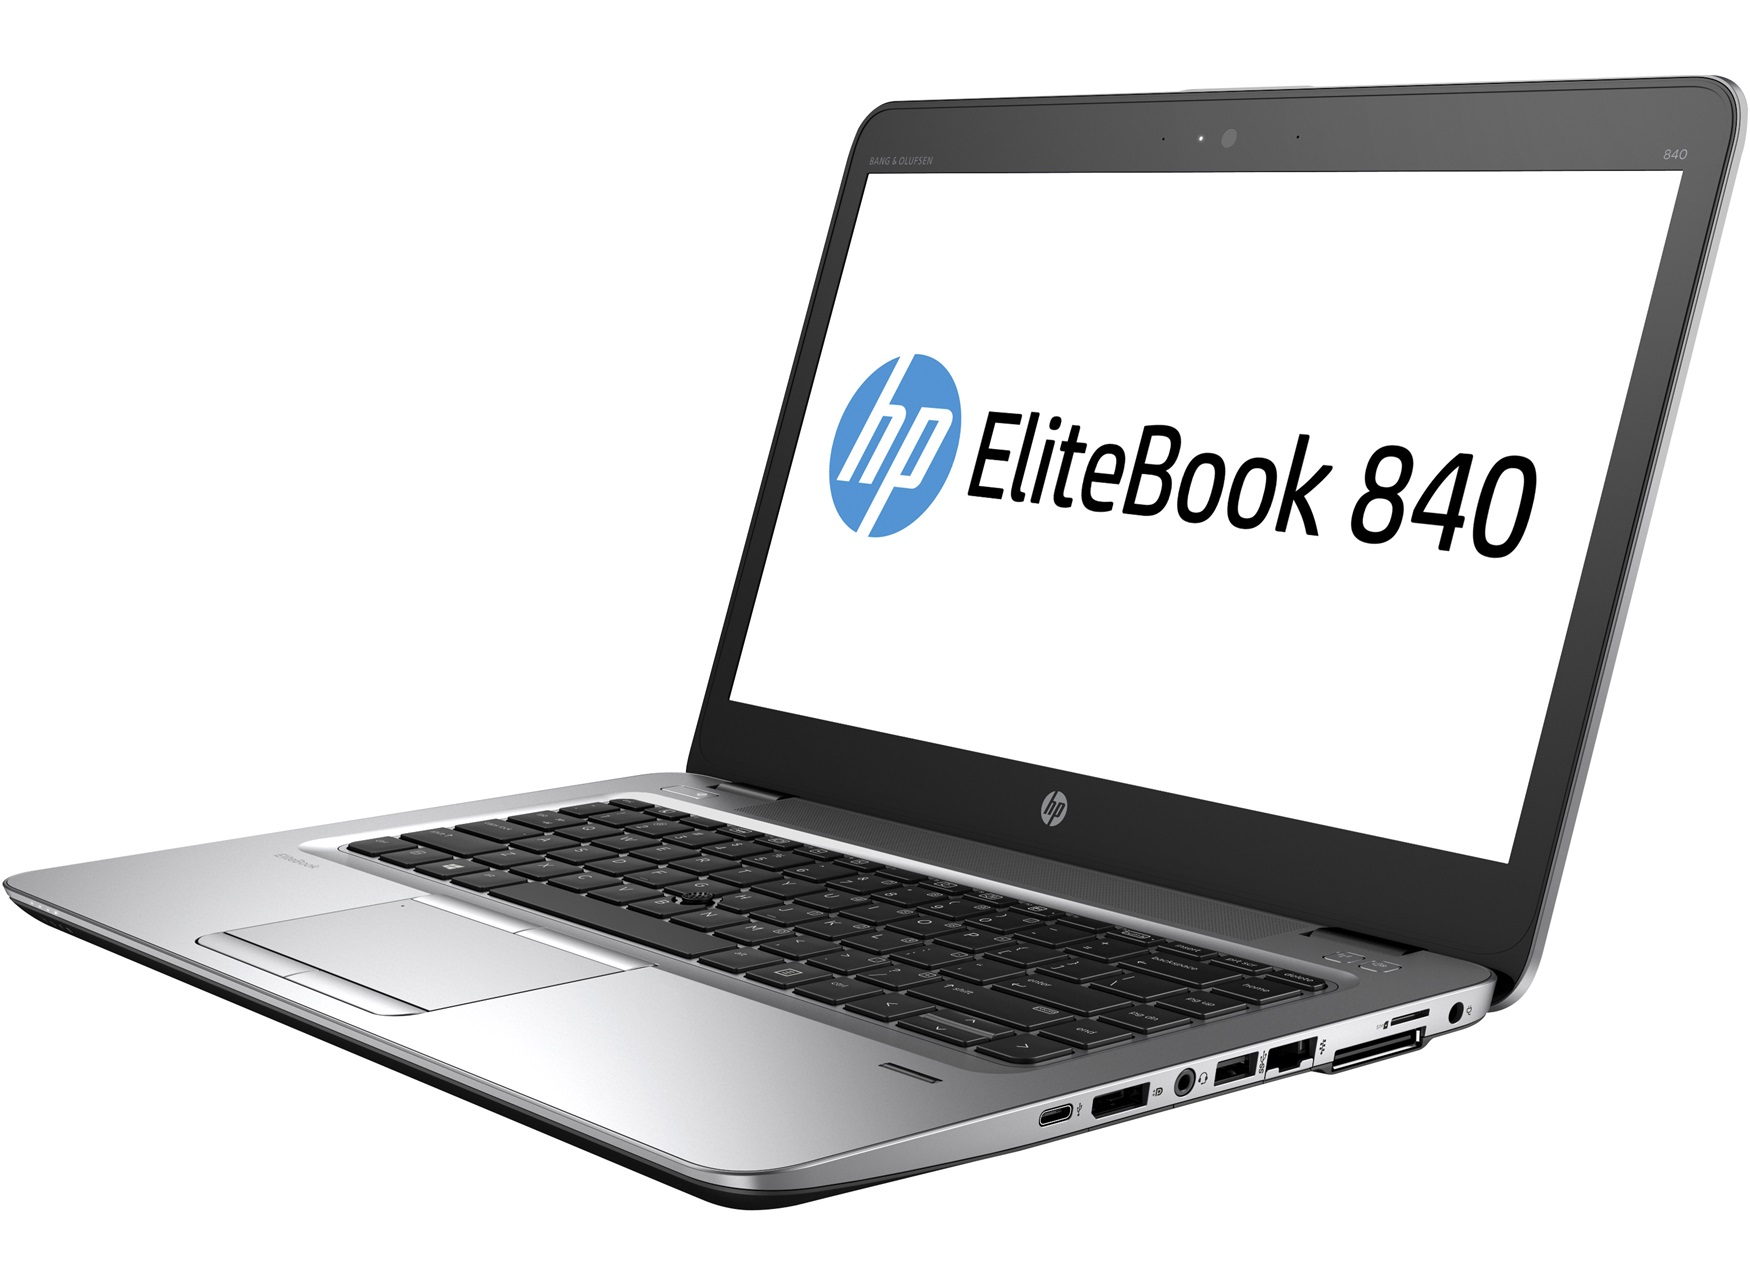 F9Y25UP HP 840 G1, i5 4300 processor, 8GB Ram, 180GB SSD, Windows 10 Pro